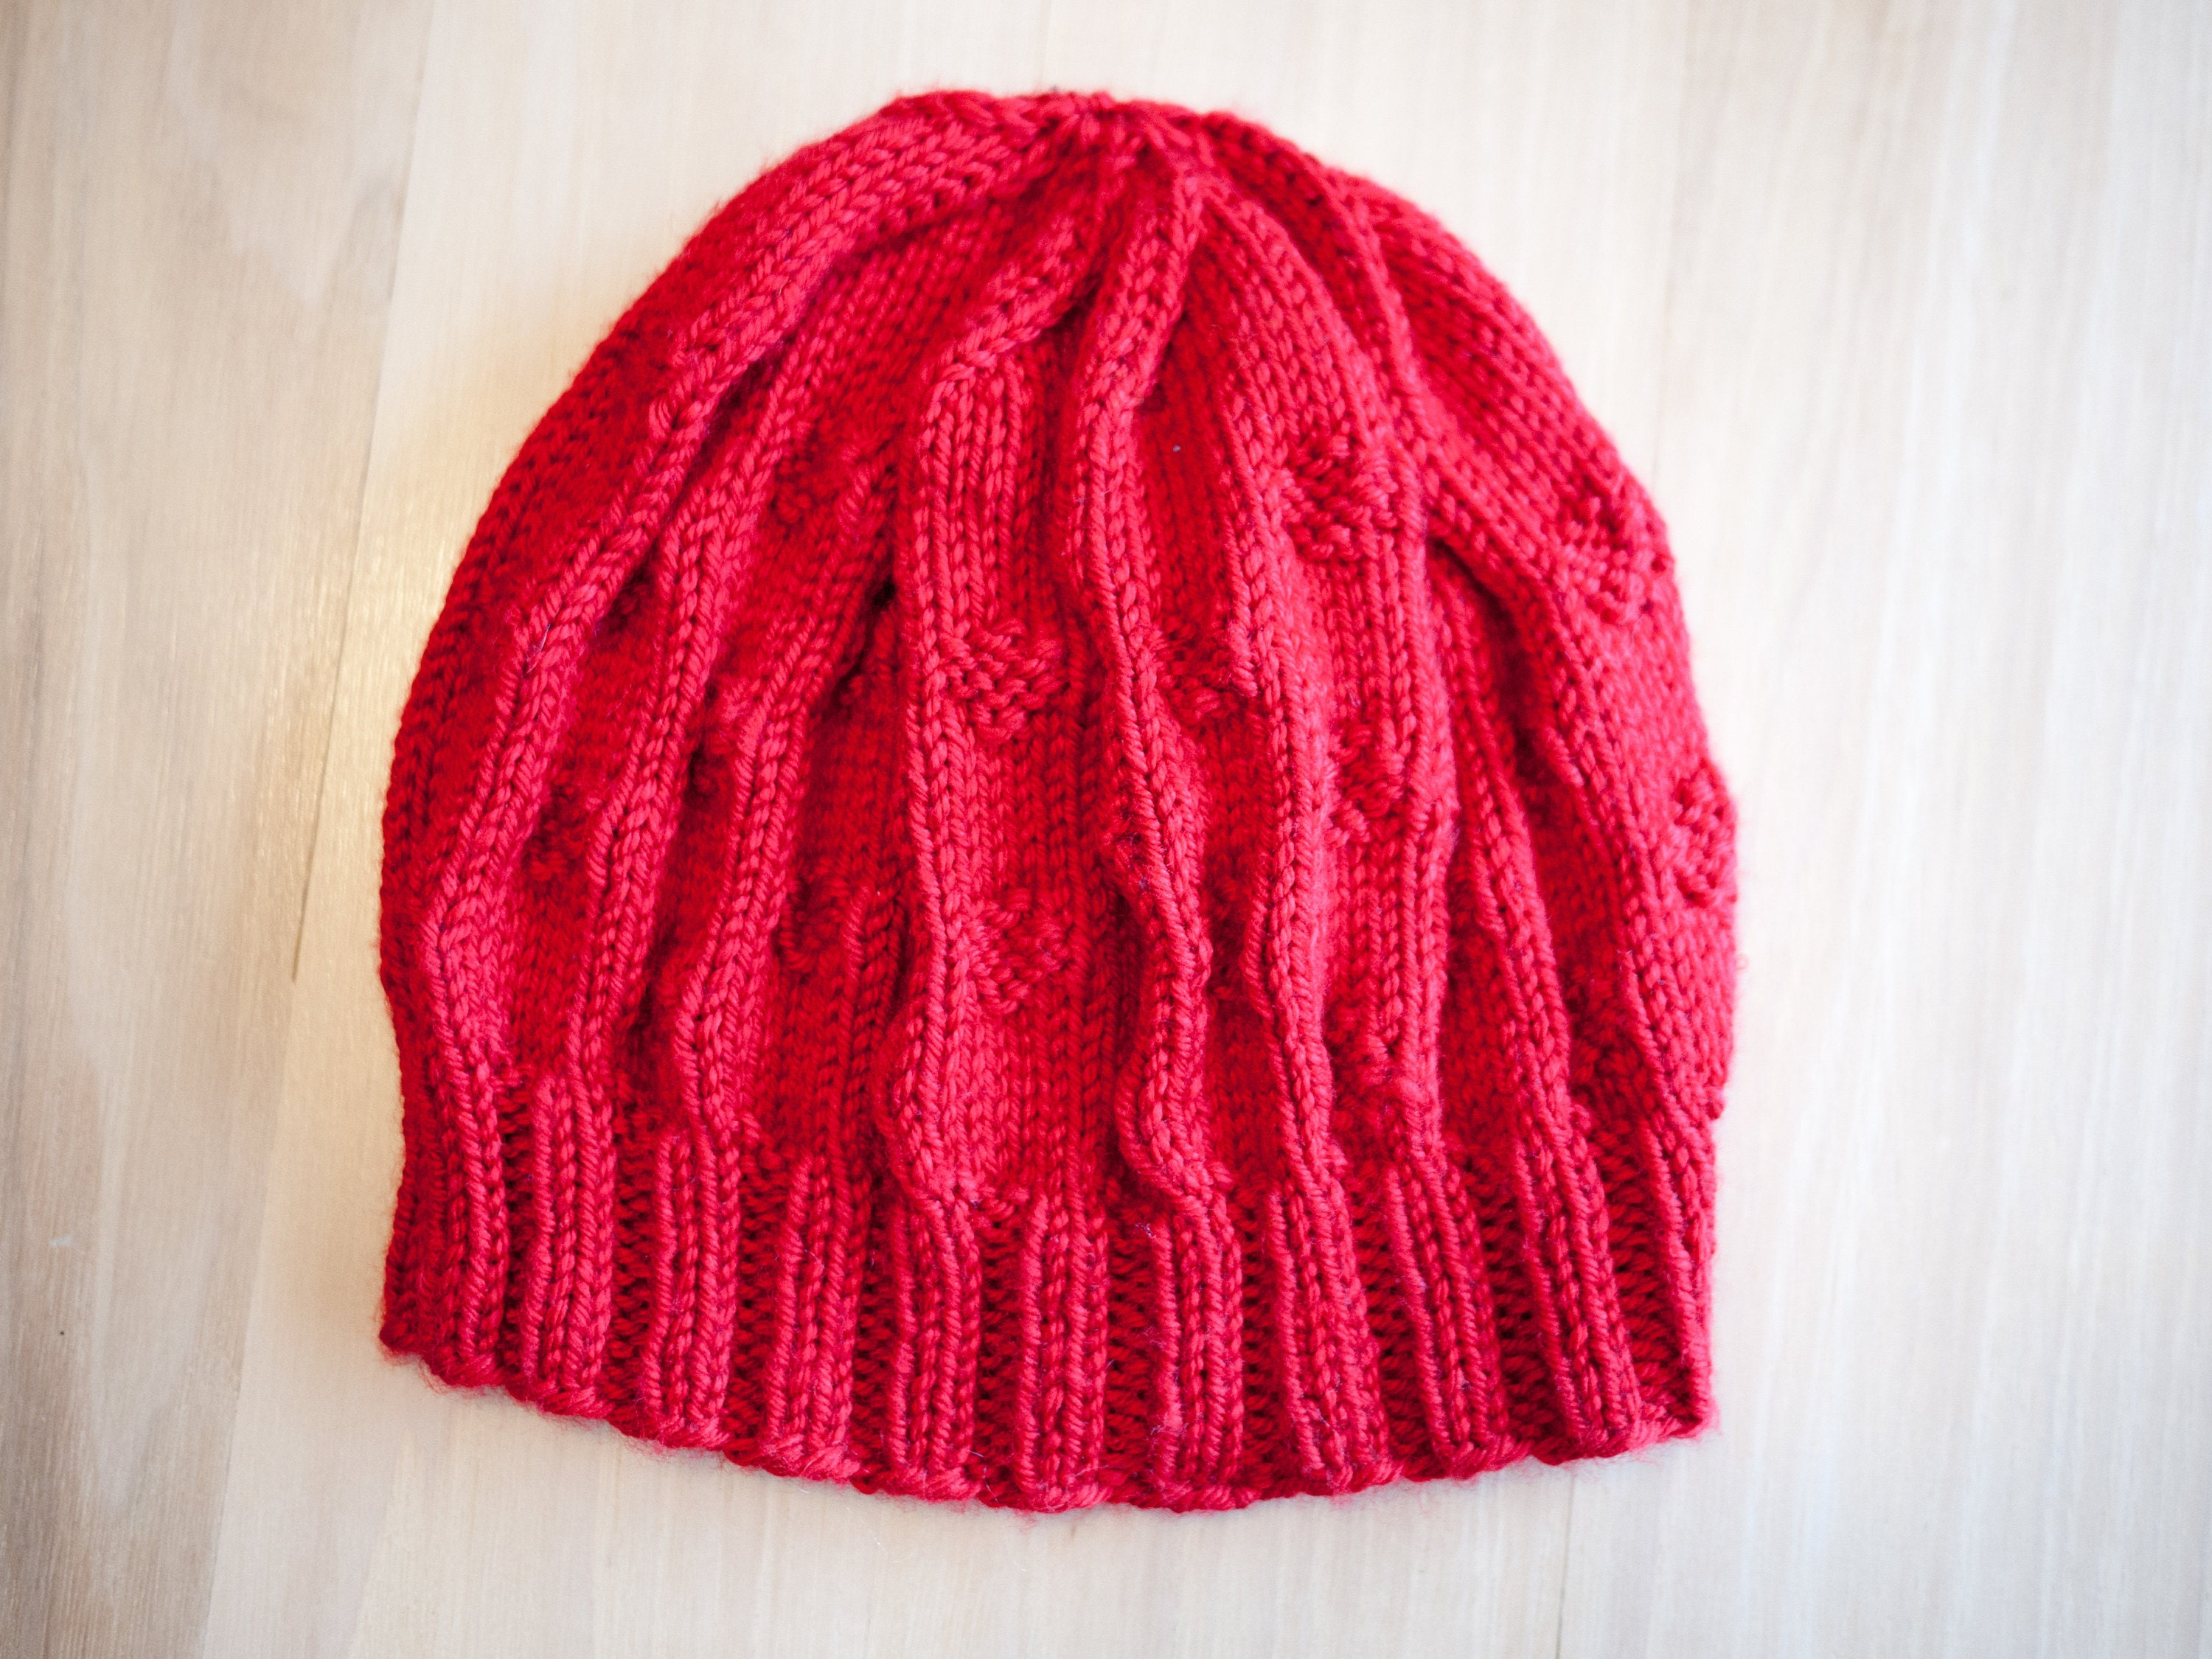 Finished knitted hat